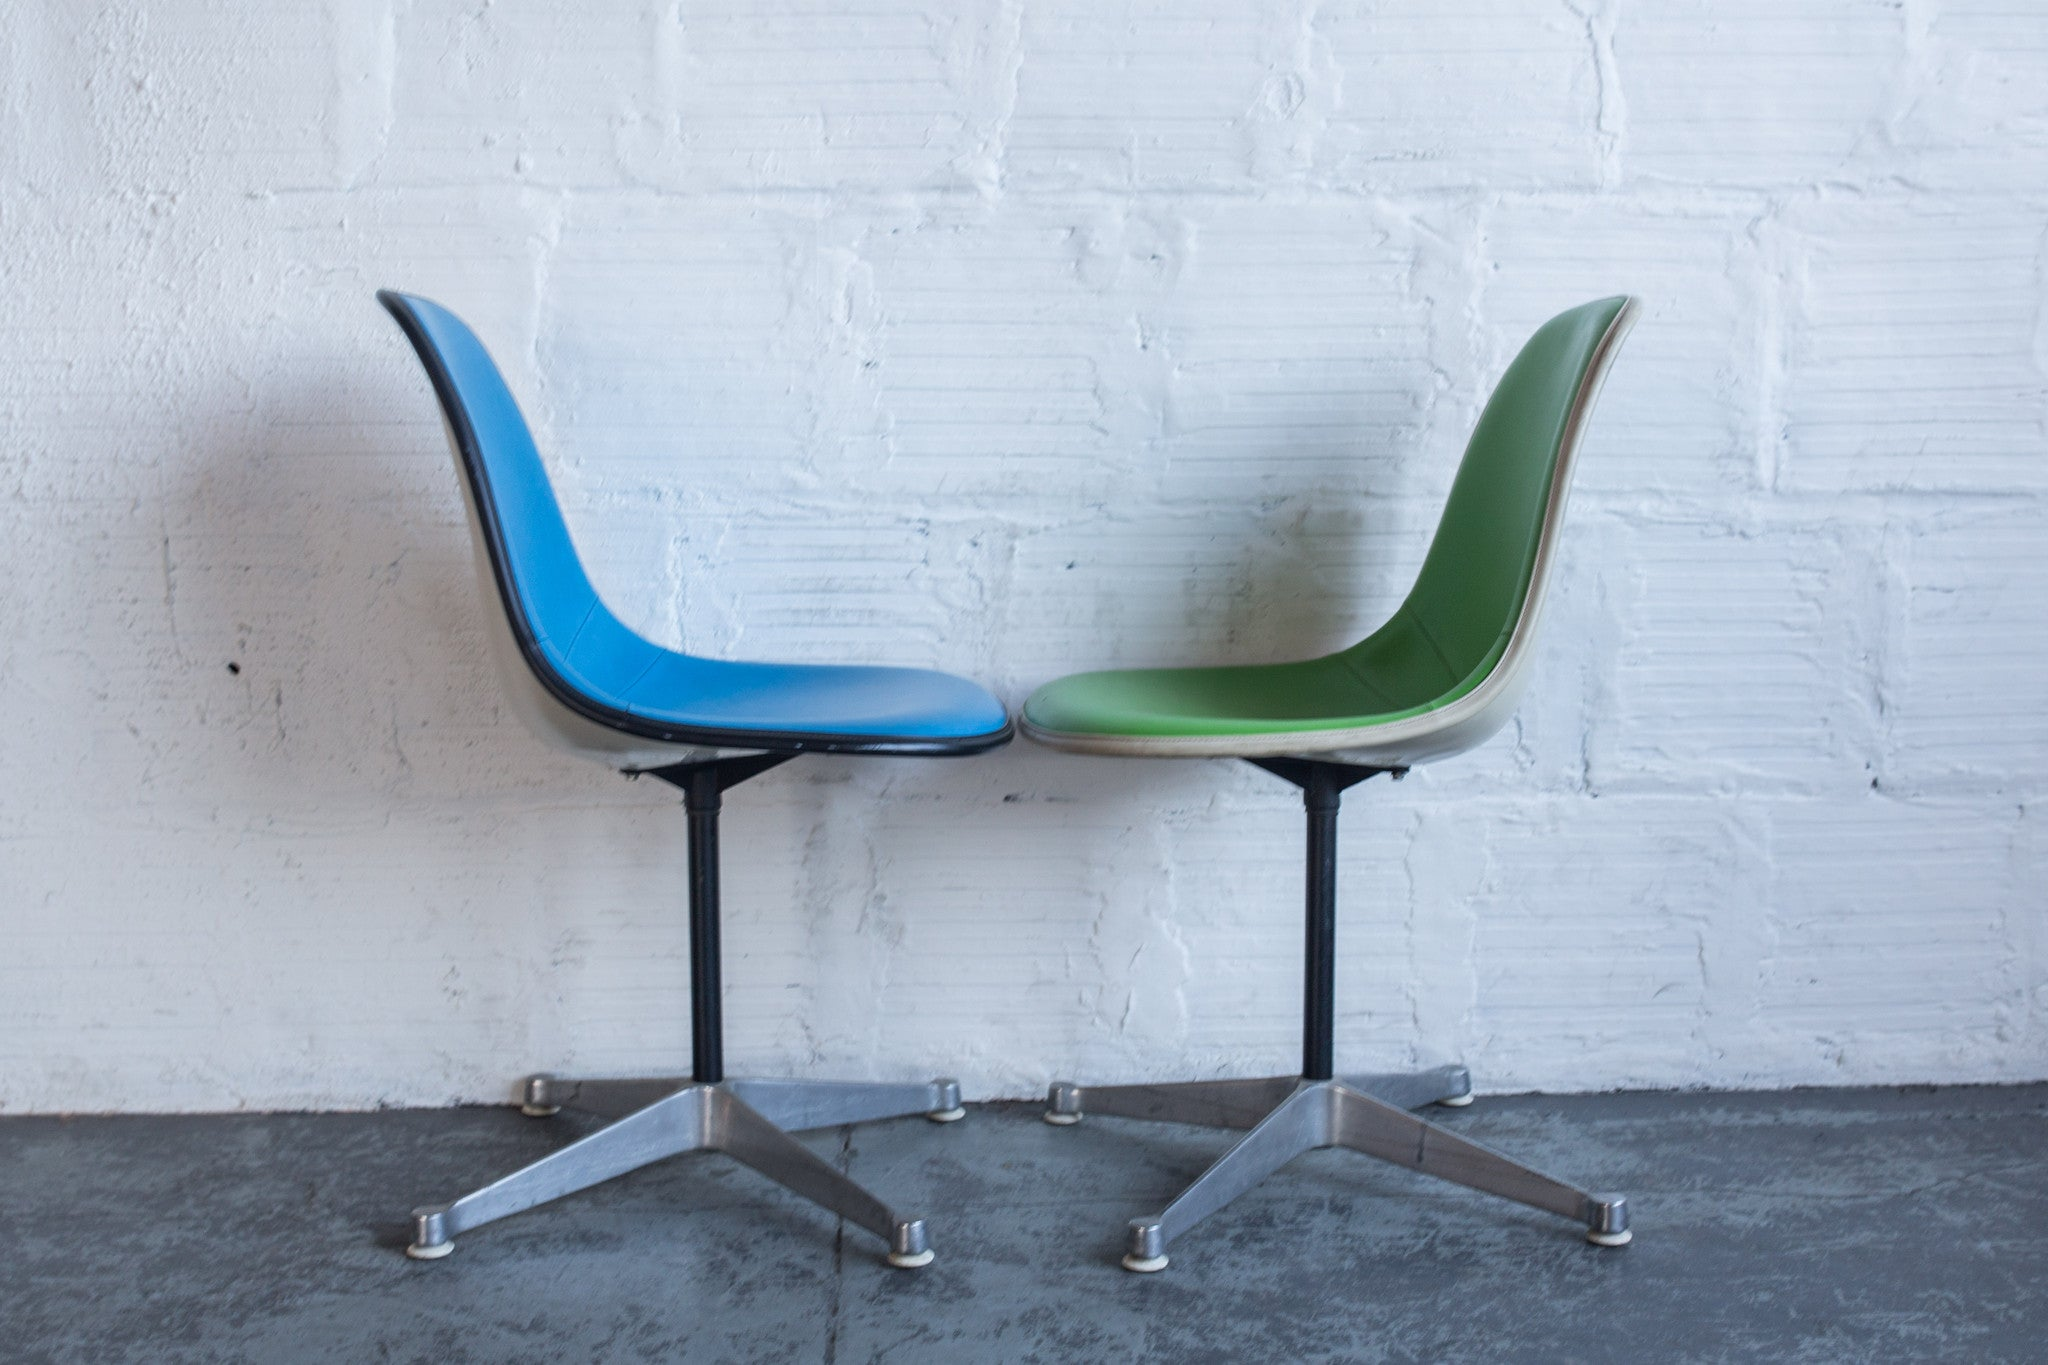 Vintage eames chair - Vintage Eames Upholstered Side Chairs